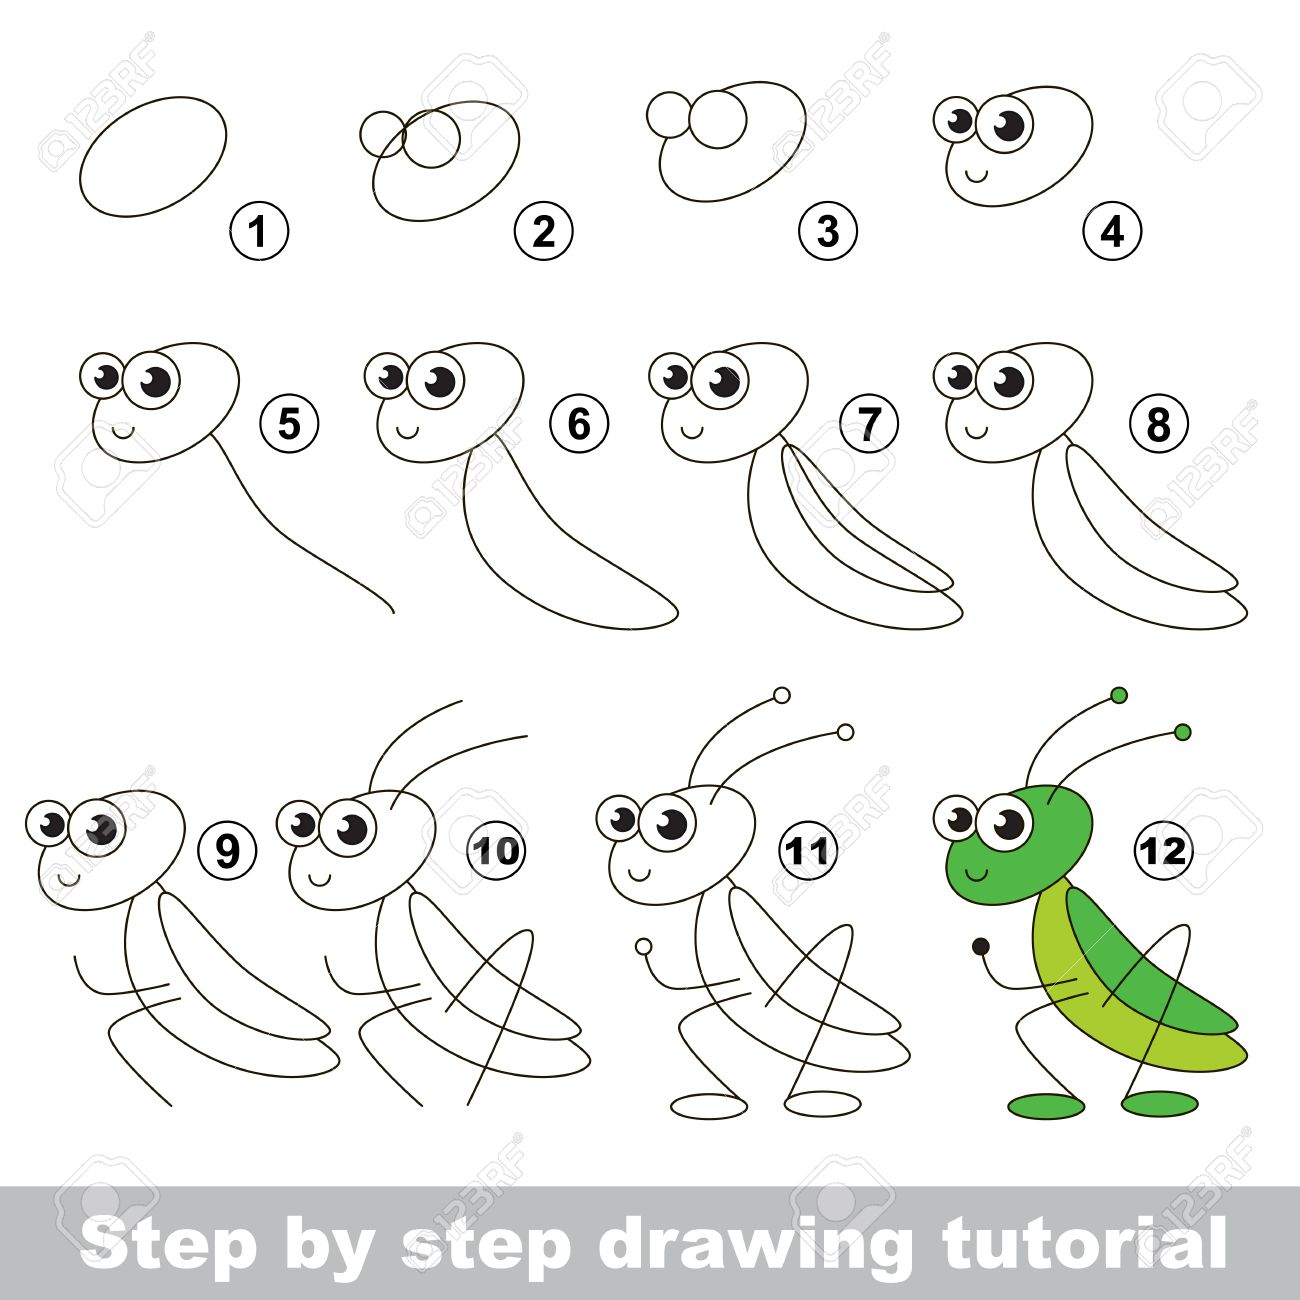 Drawing Tutorial For Children Easy Educational Kid Game Simple